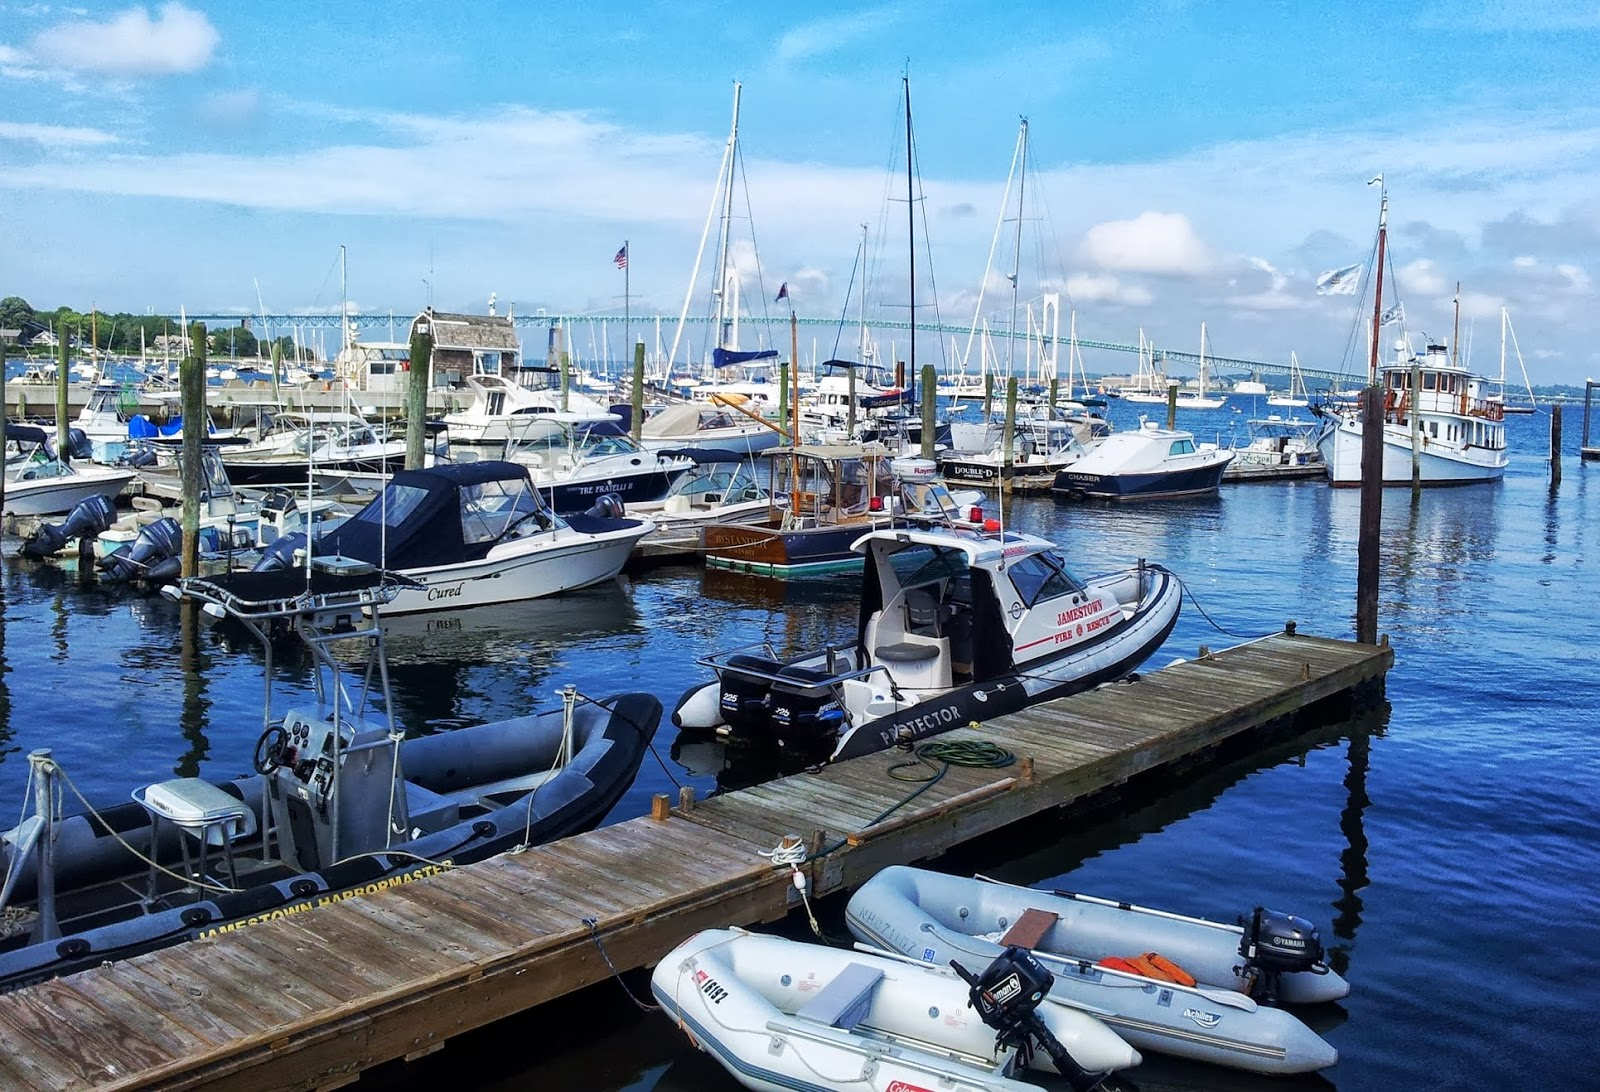 Conanicut is one of the most visited harbor towns on the East Coast.